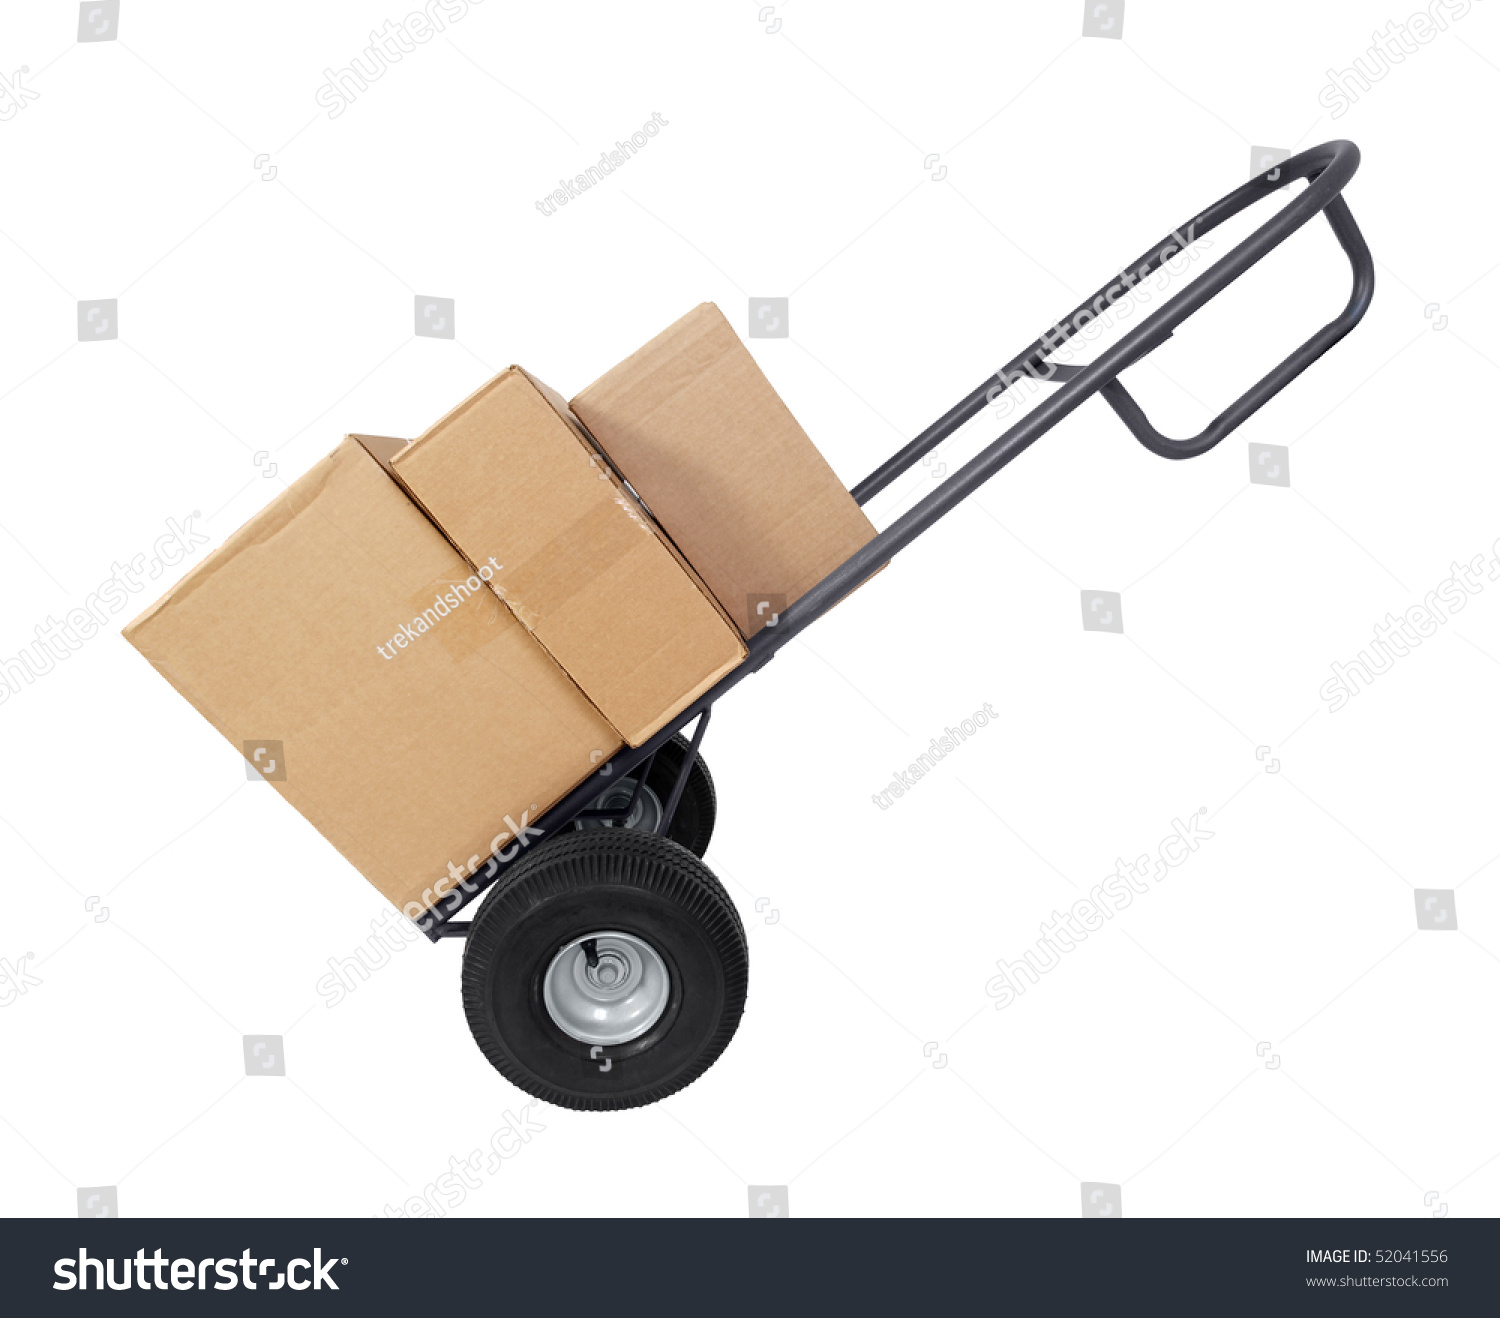 large furniture dolly with brown shipping boxes